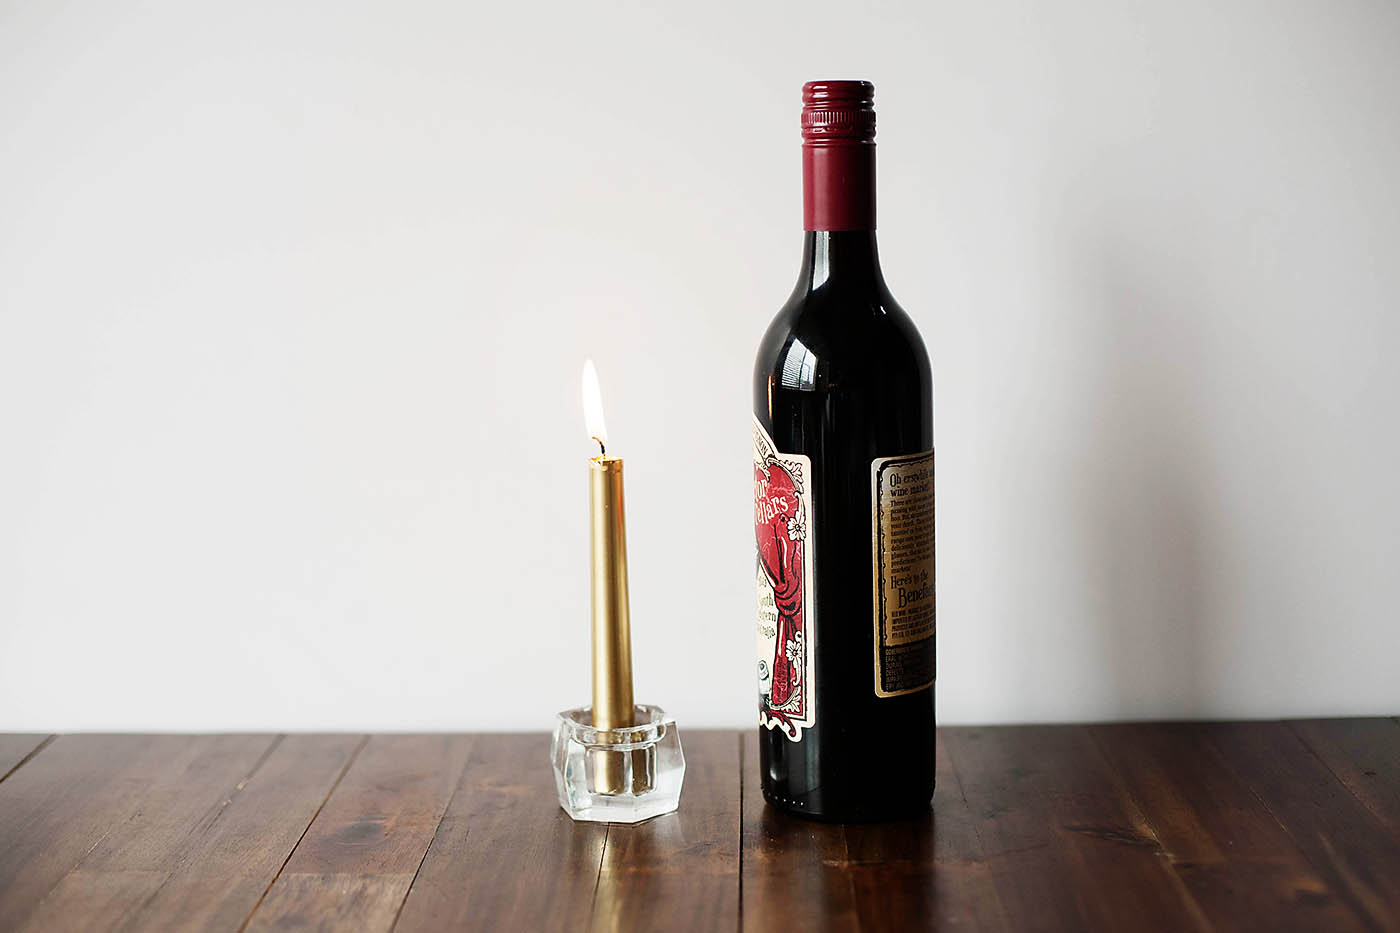 Can you blow out a candle through a bottle?